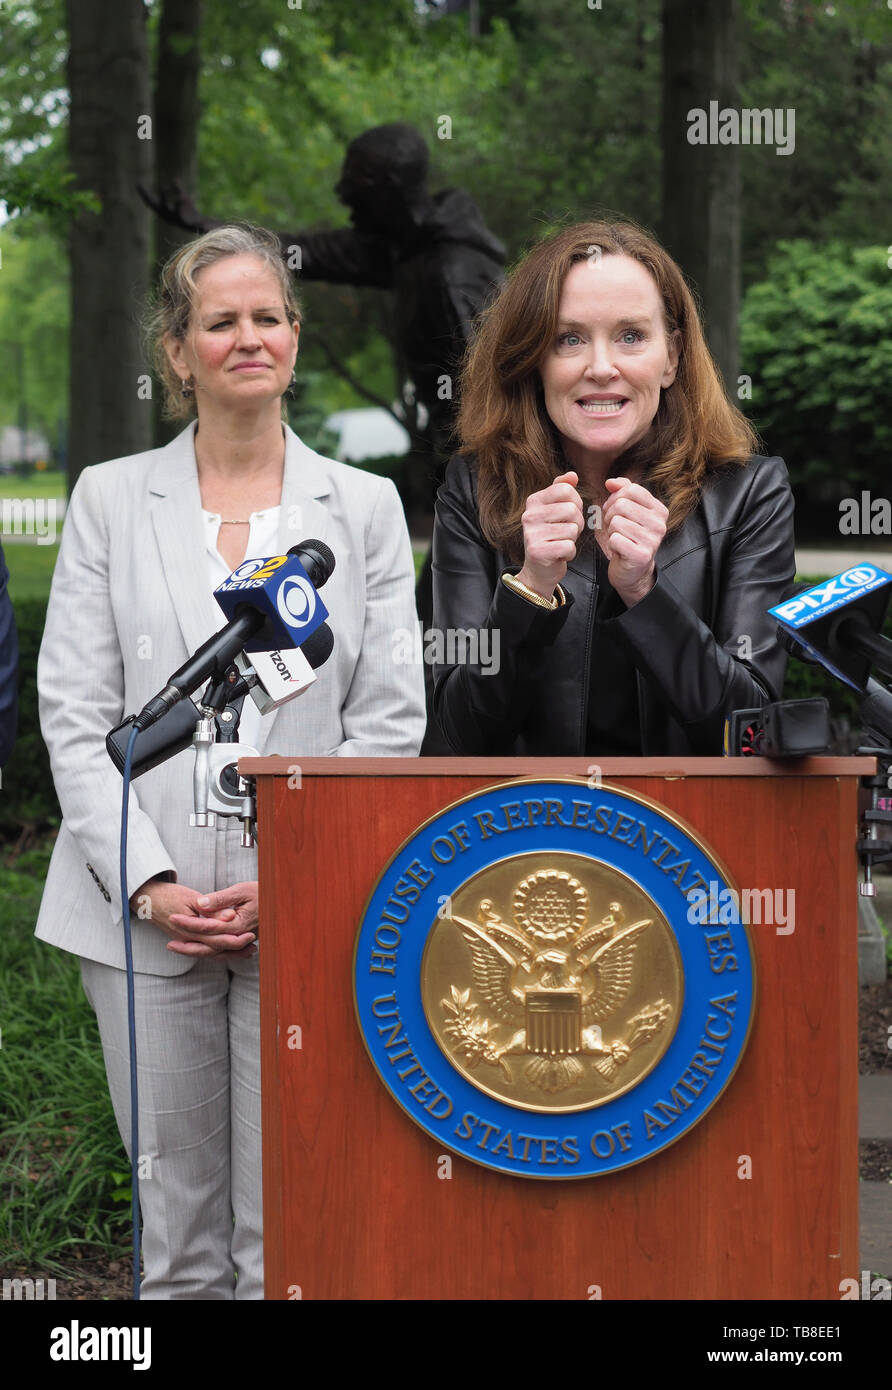 Hempstead, New York, USA. 30th May, 2019. At podium, U.S. Representative KATHLEEN RICE (NY-04) clenches her fists during her press conference to announce she's introducing Three Bills to Congress to combat Impaired and distracted Driving, and at left is Nassau County Executive LAURA CURRAN, who thanked Rep. Rice for her safe driving legislation. Congresswoman Rice announced the package of 3 bills - End Drunk Driving Act, the Prevent Impaired Driving Child Endangerment Act, and the Distracted Driving Education Act of 2019 - at the Drunk Driving Victims Memorial in Eisenhower Park. (Cr Stock Photo